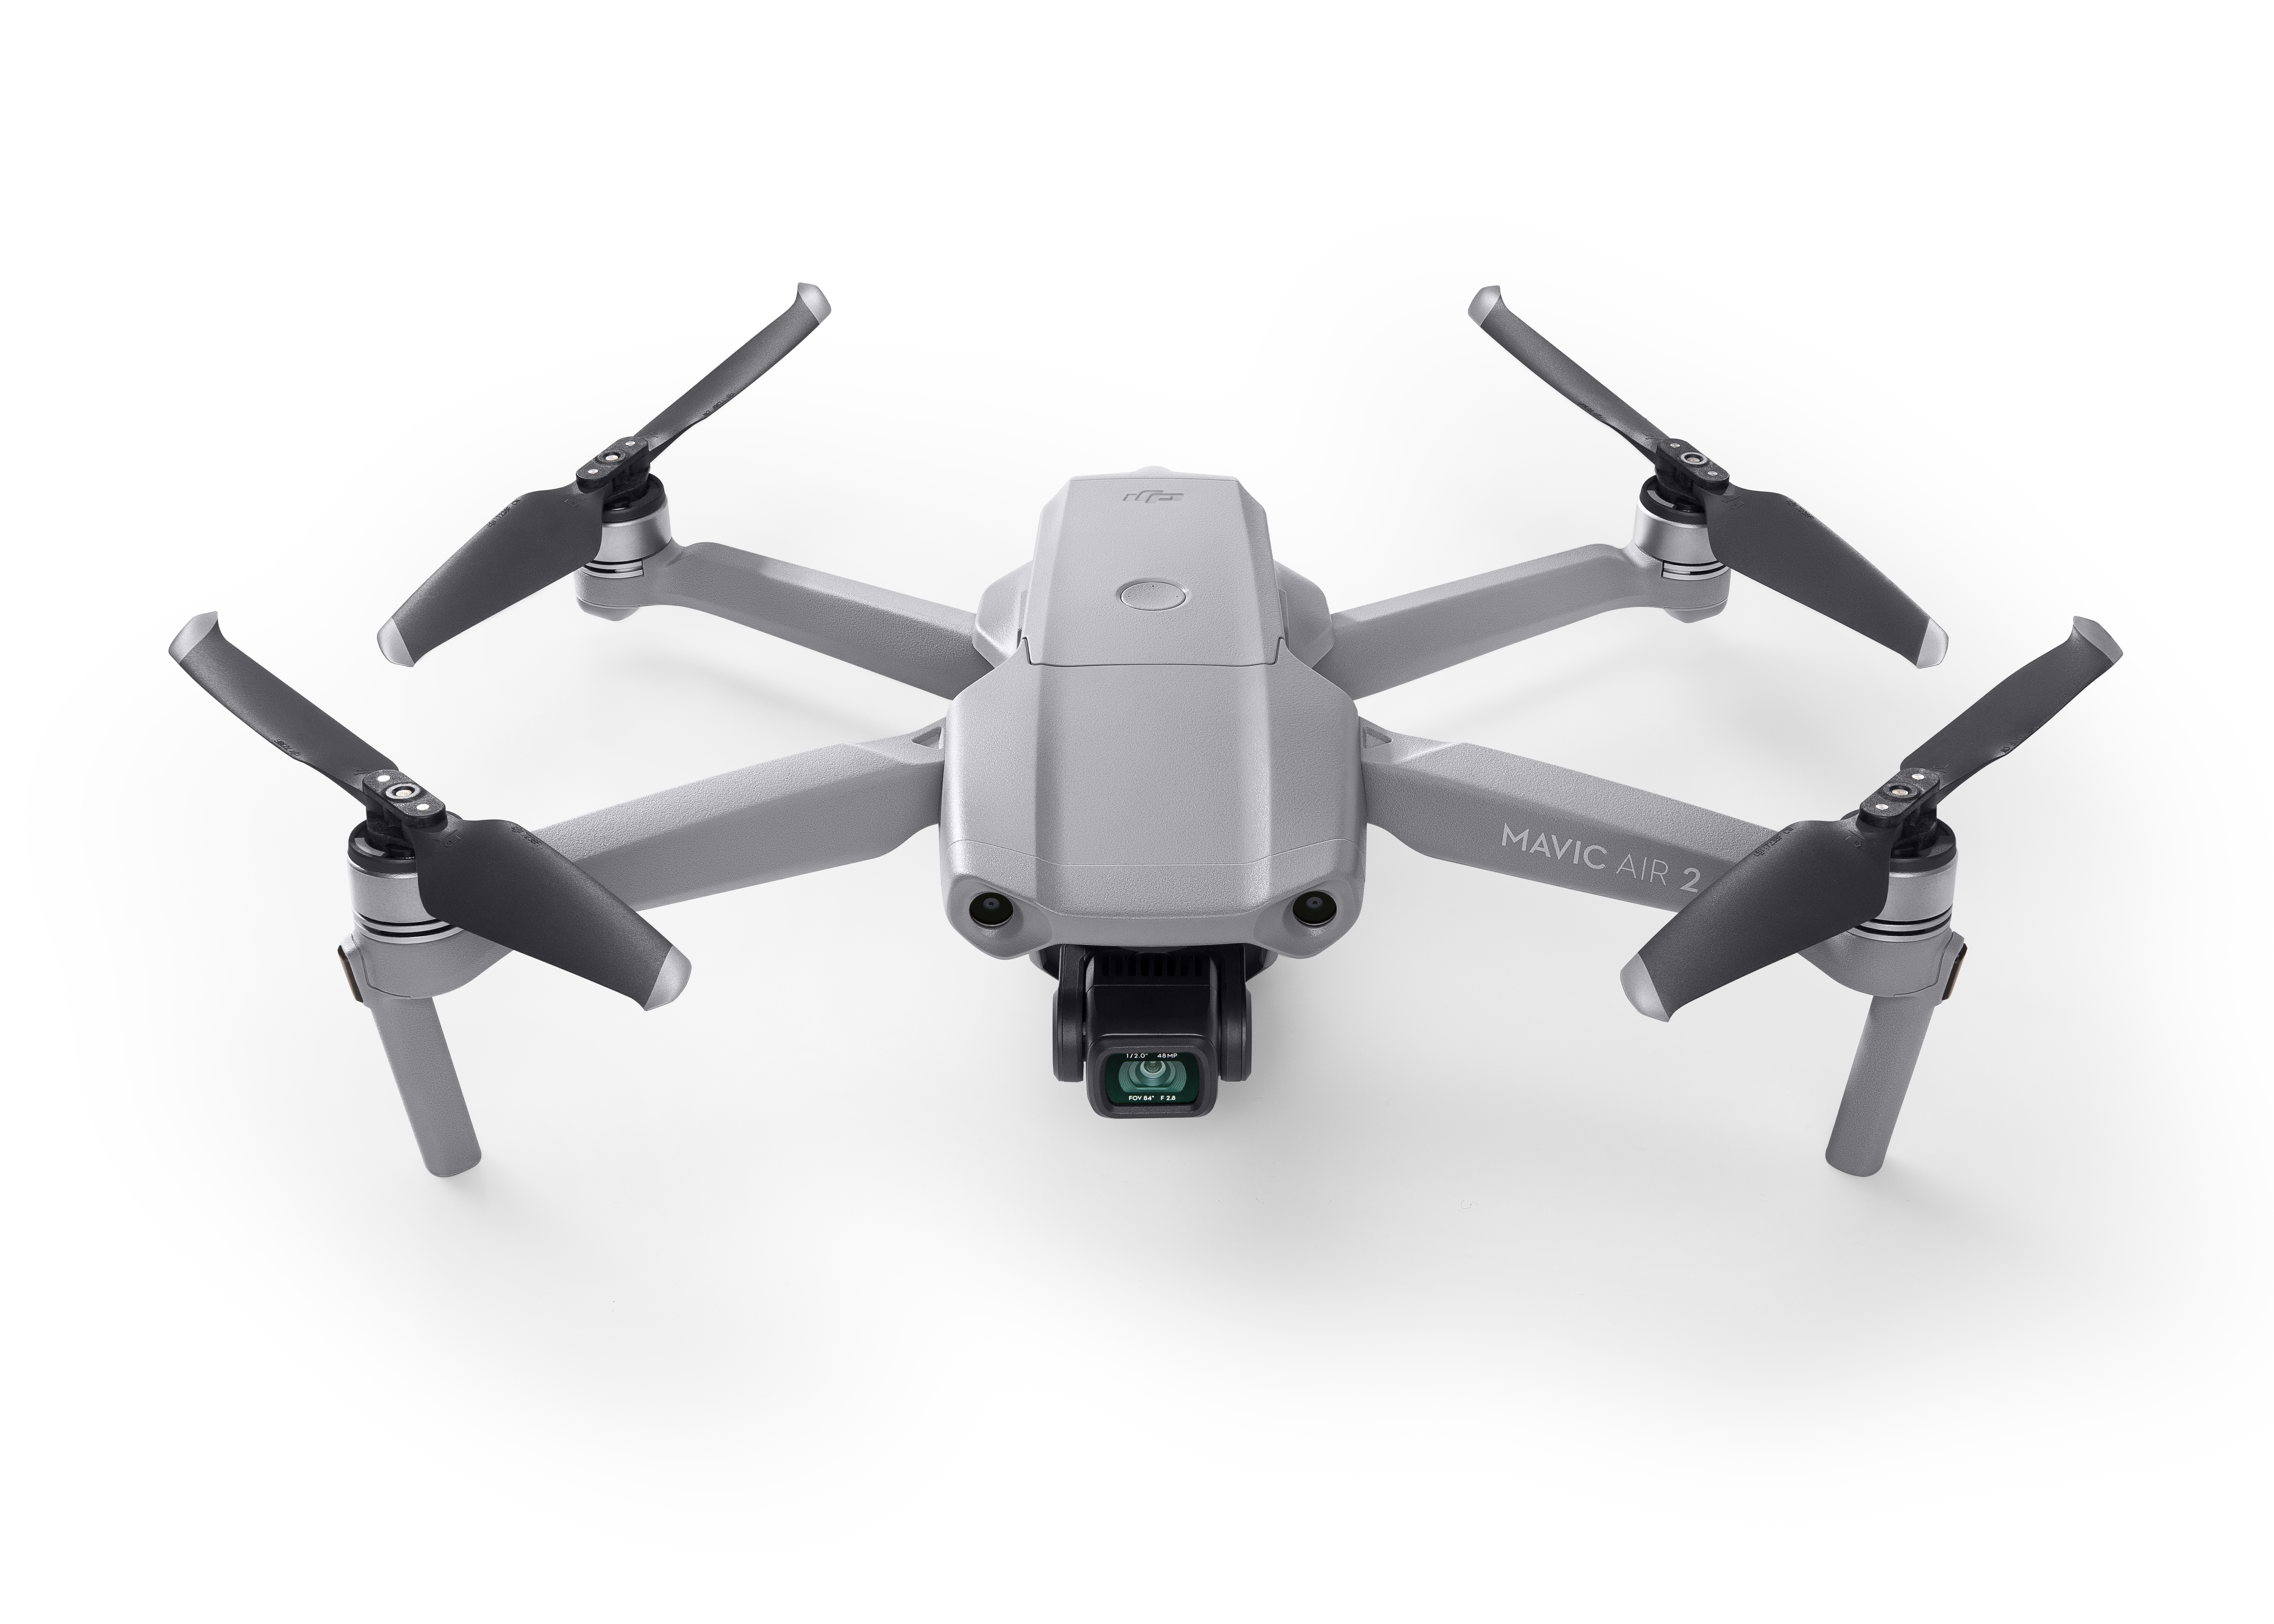 Dji S Mini Mavic Air Gets An Upgrade With Improved Camera And Battery Life Techcrunch